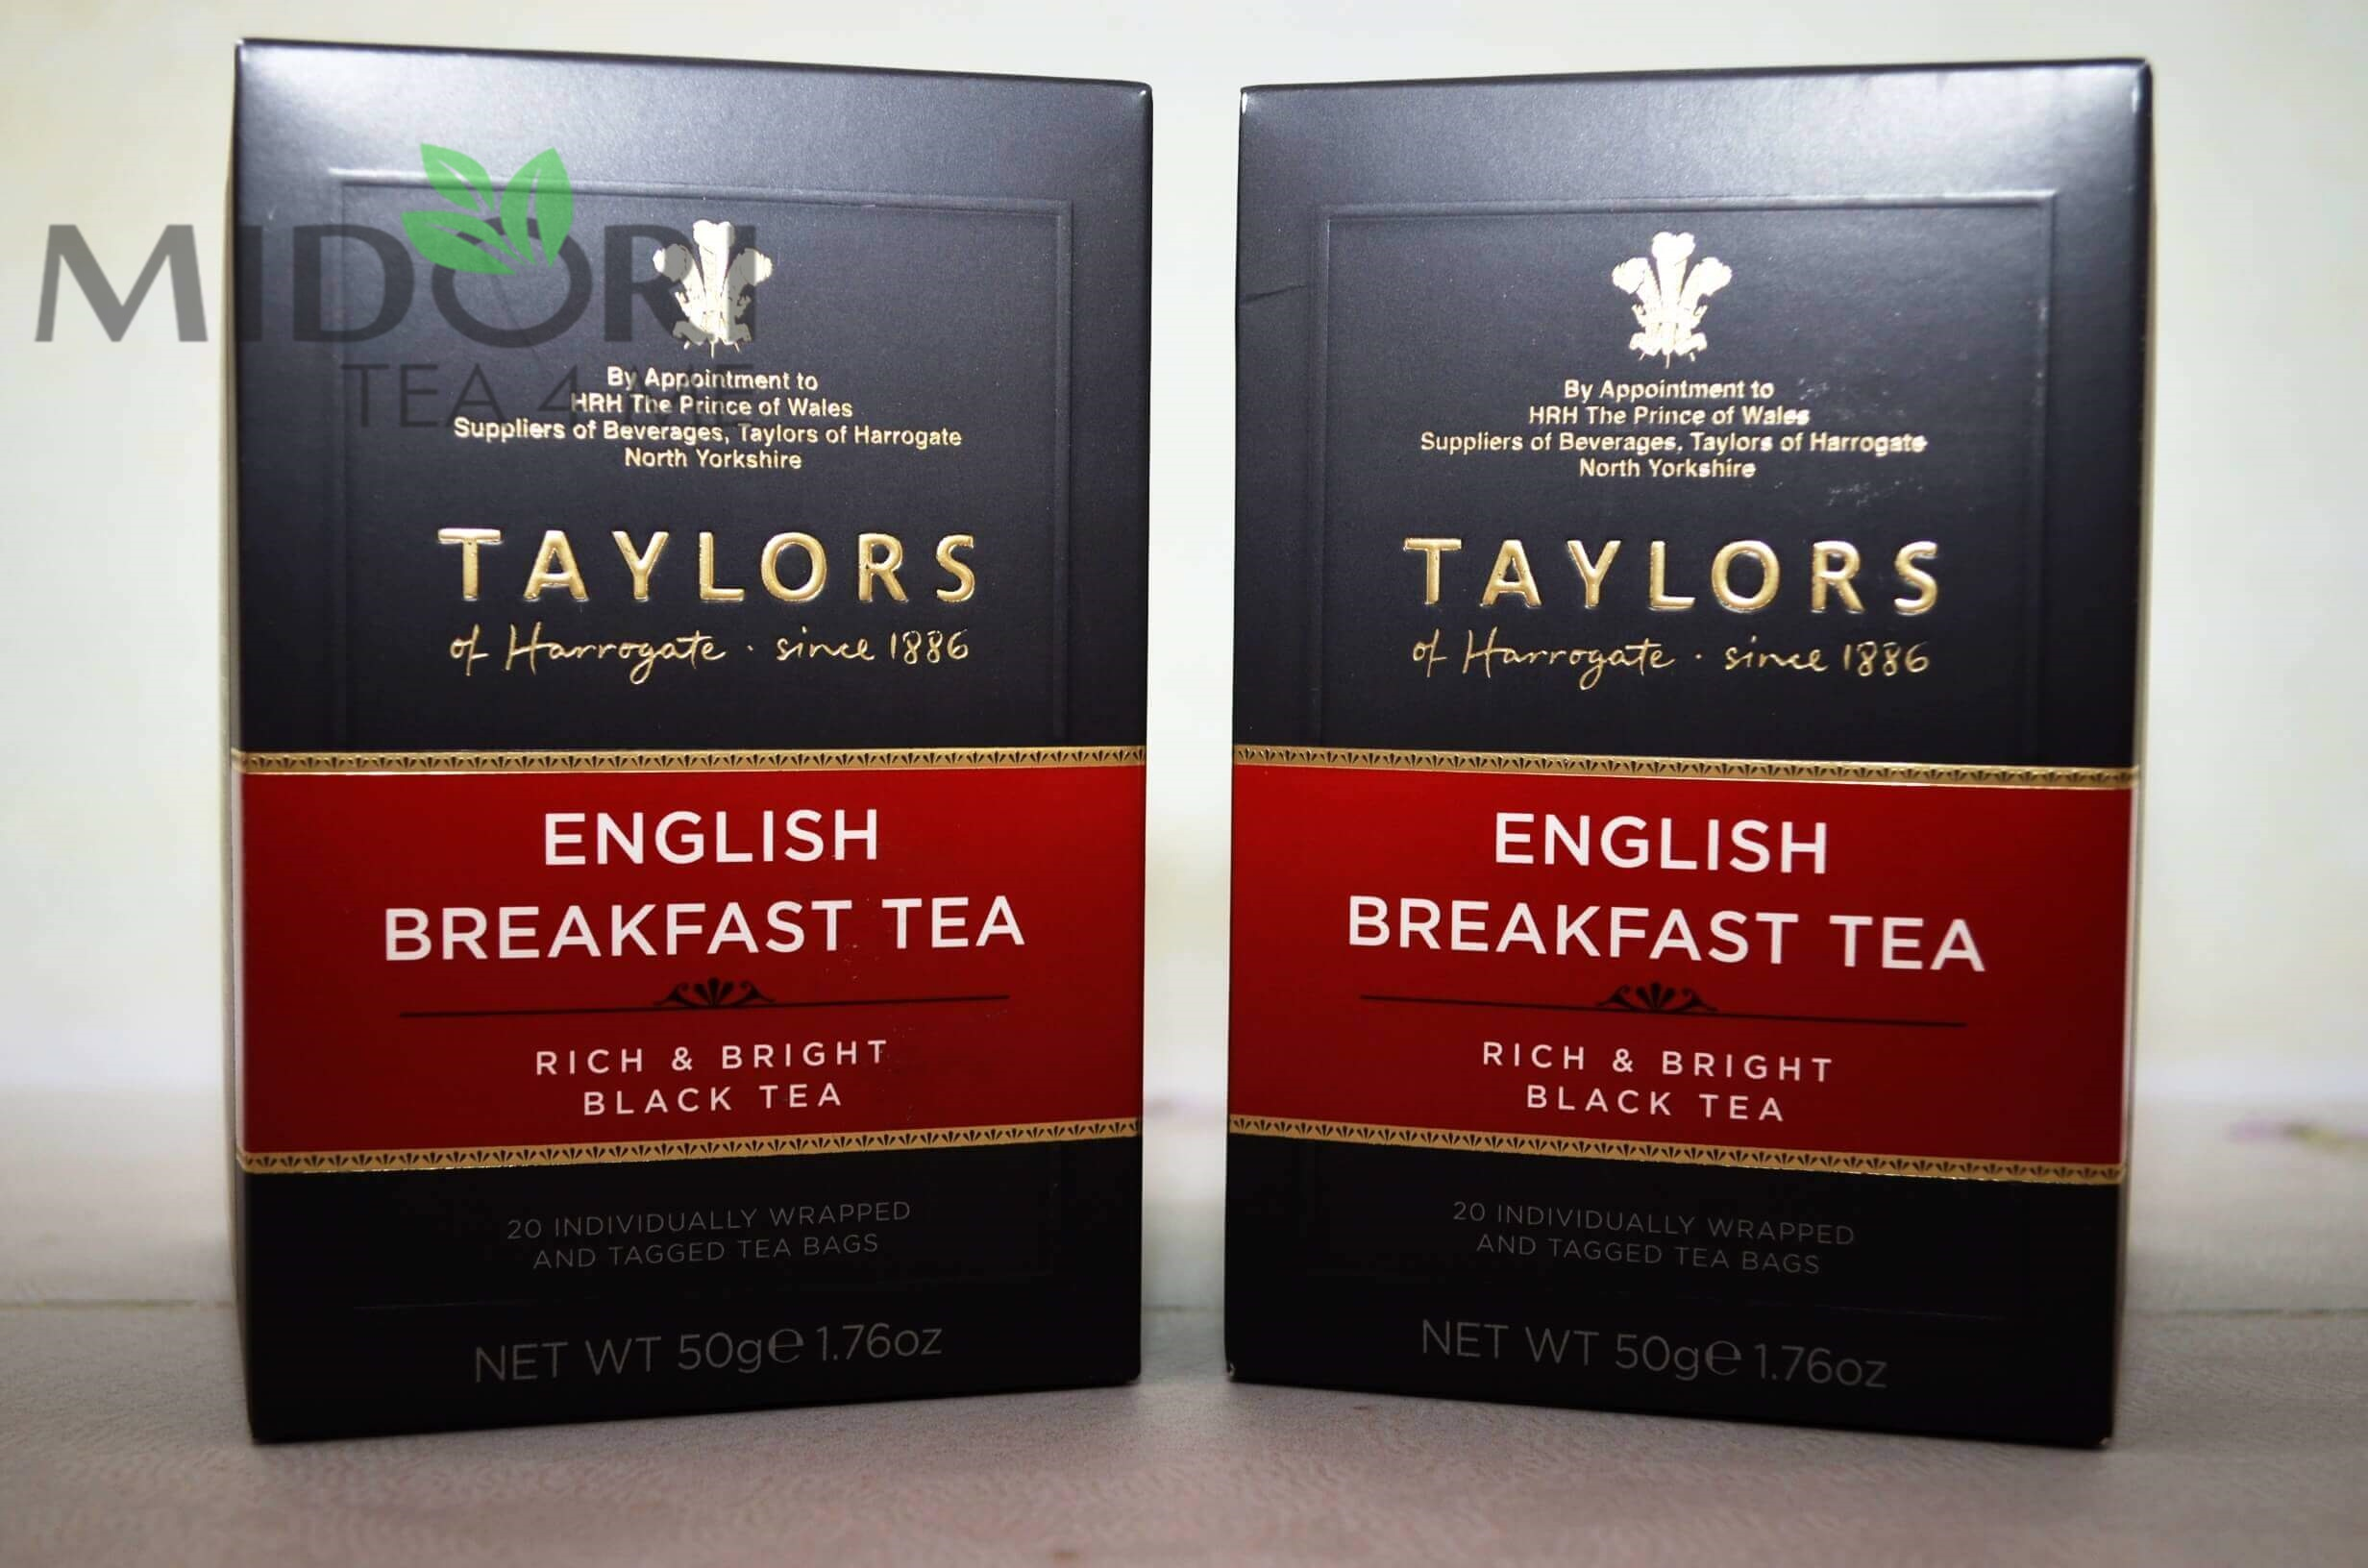 taylors of harrogate, herbata ekspresowa, herbata czarna, english breakfast tea, Taylors of Harrogate czarna